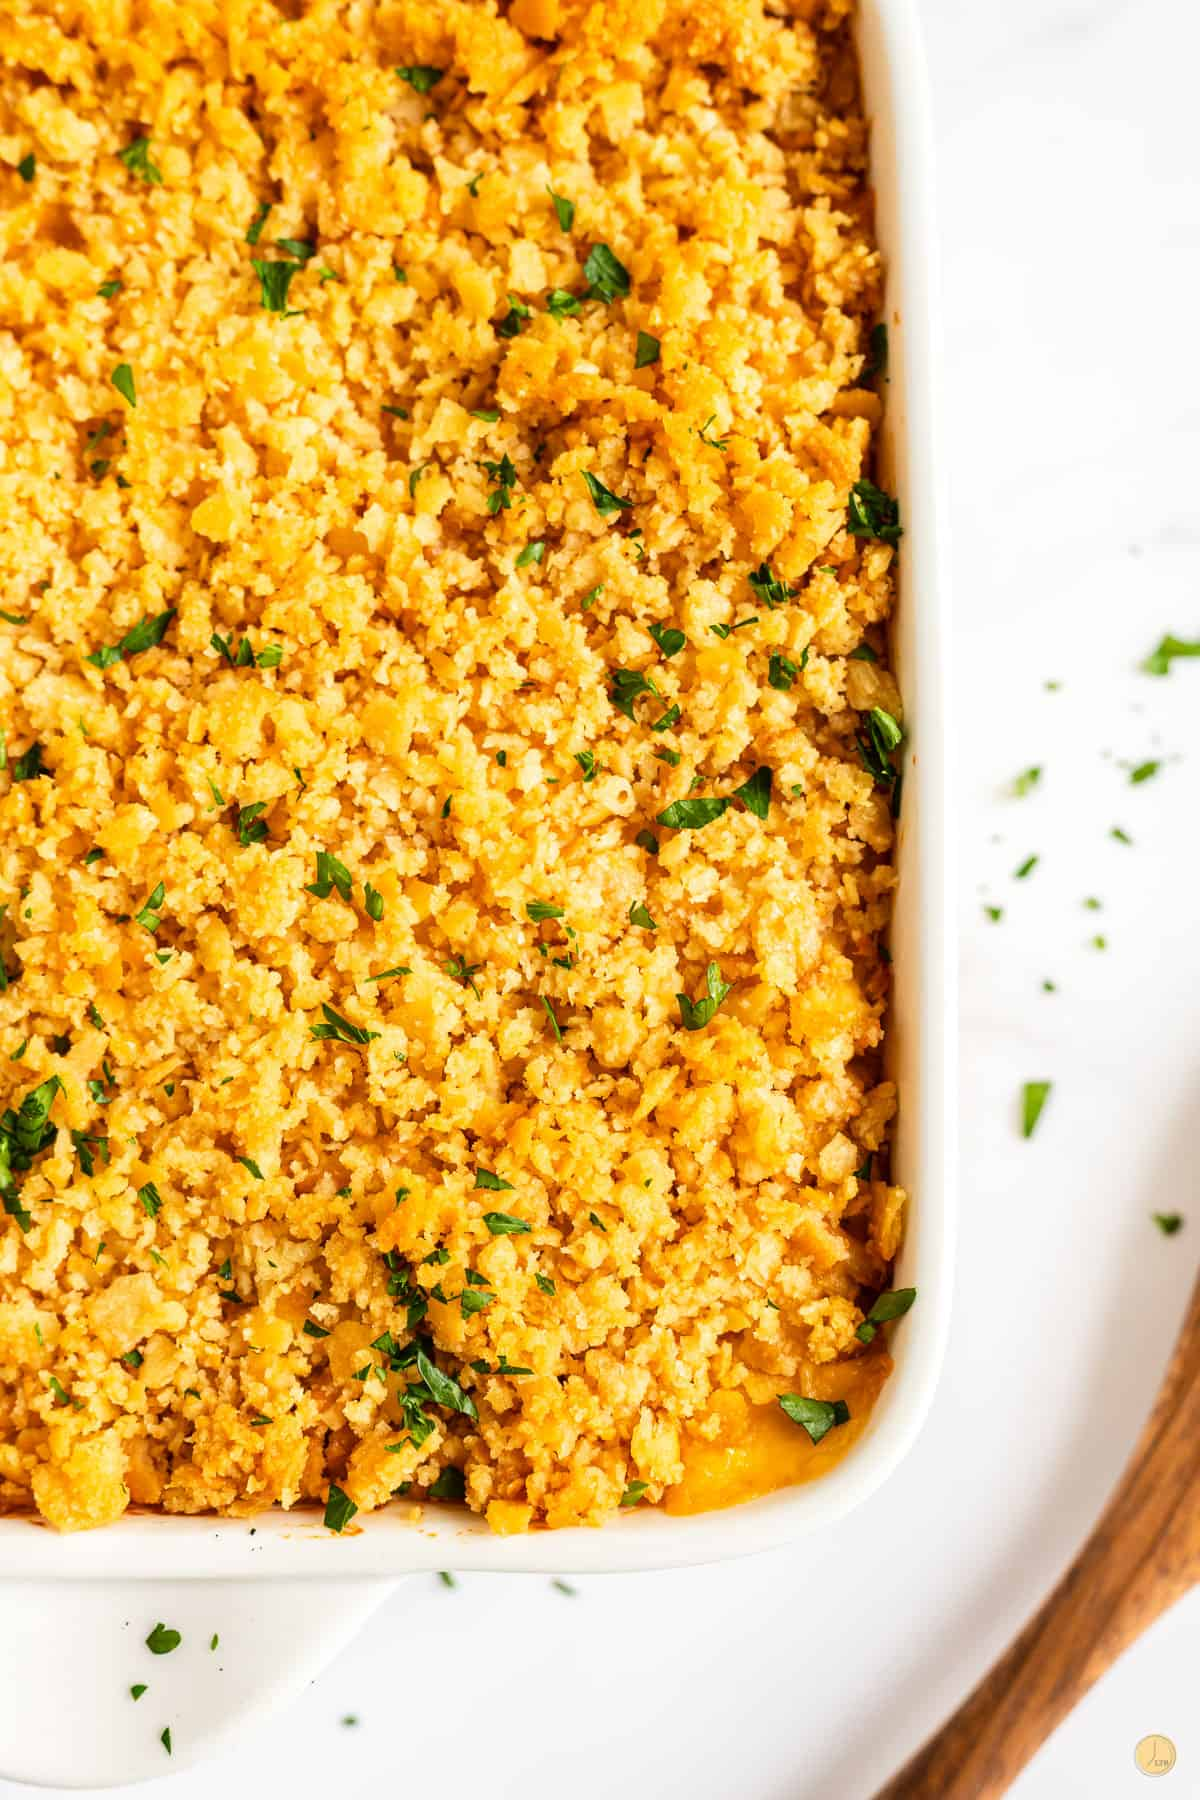 baked casserole in a white dish